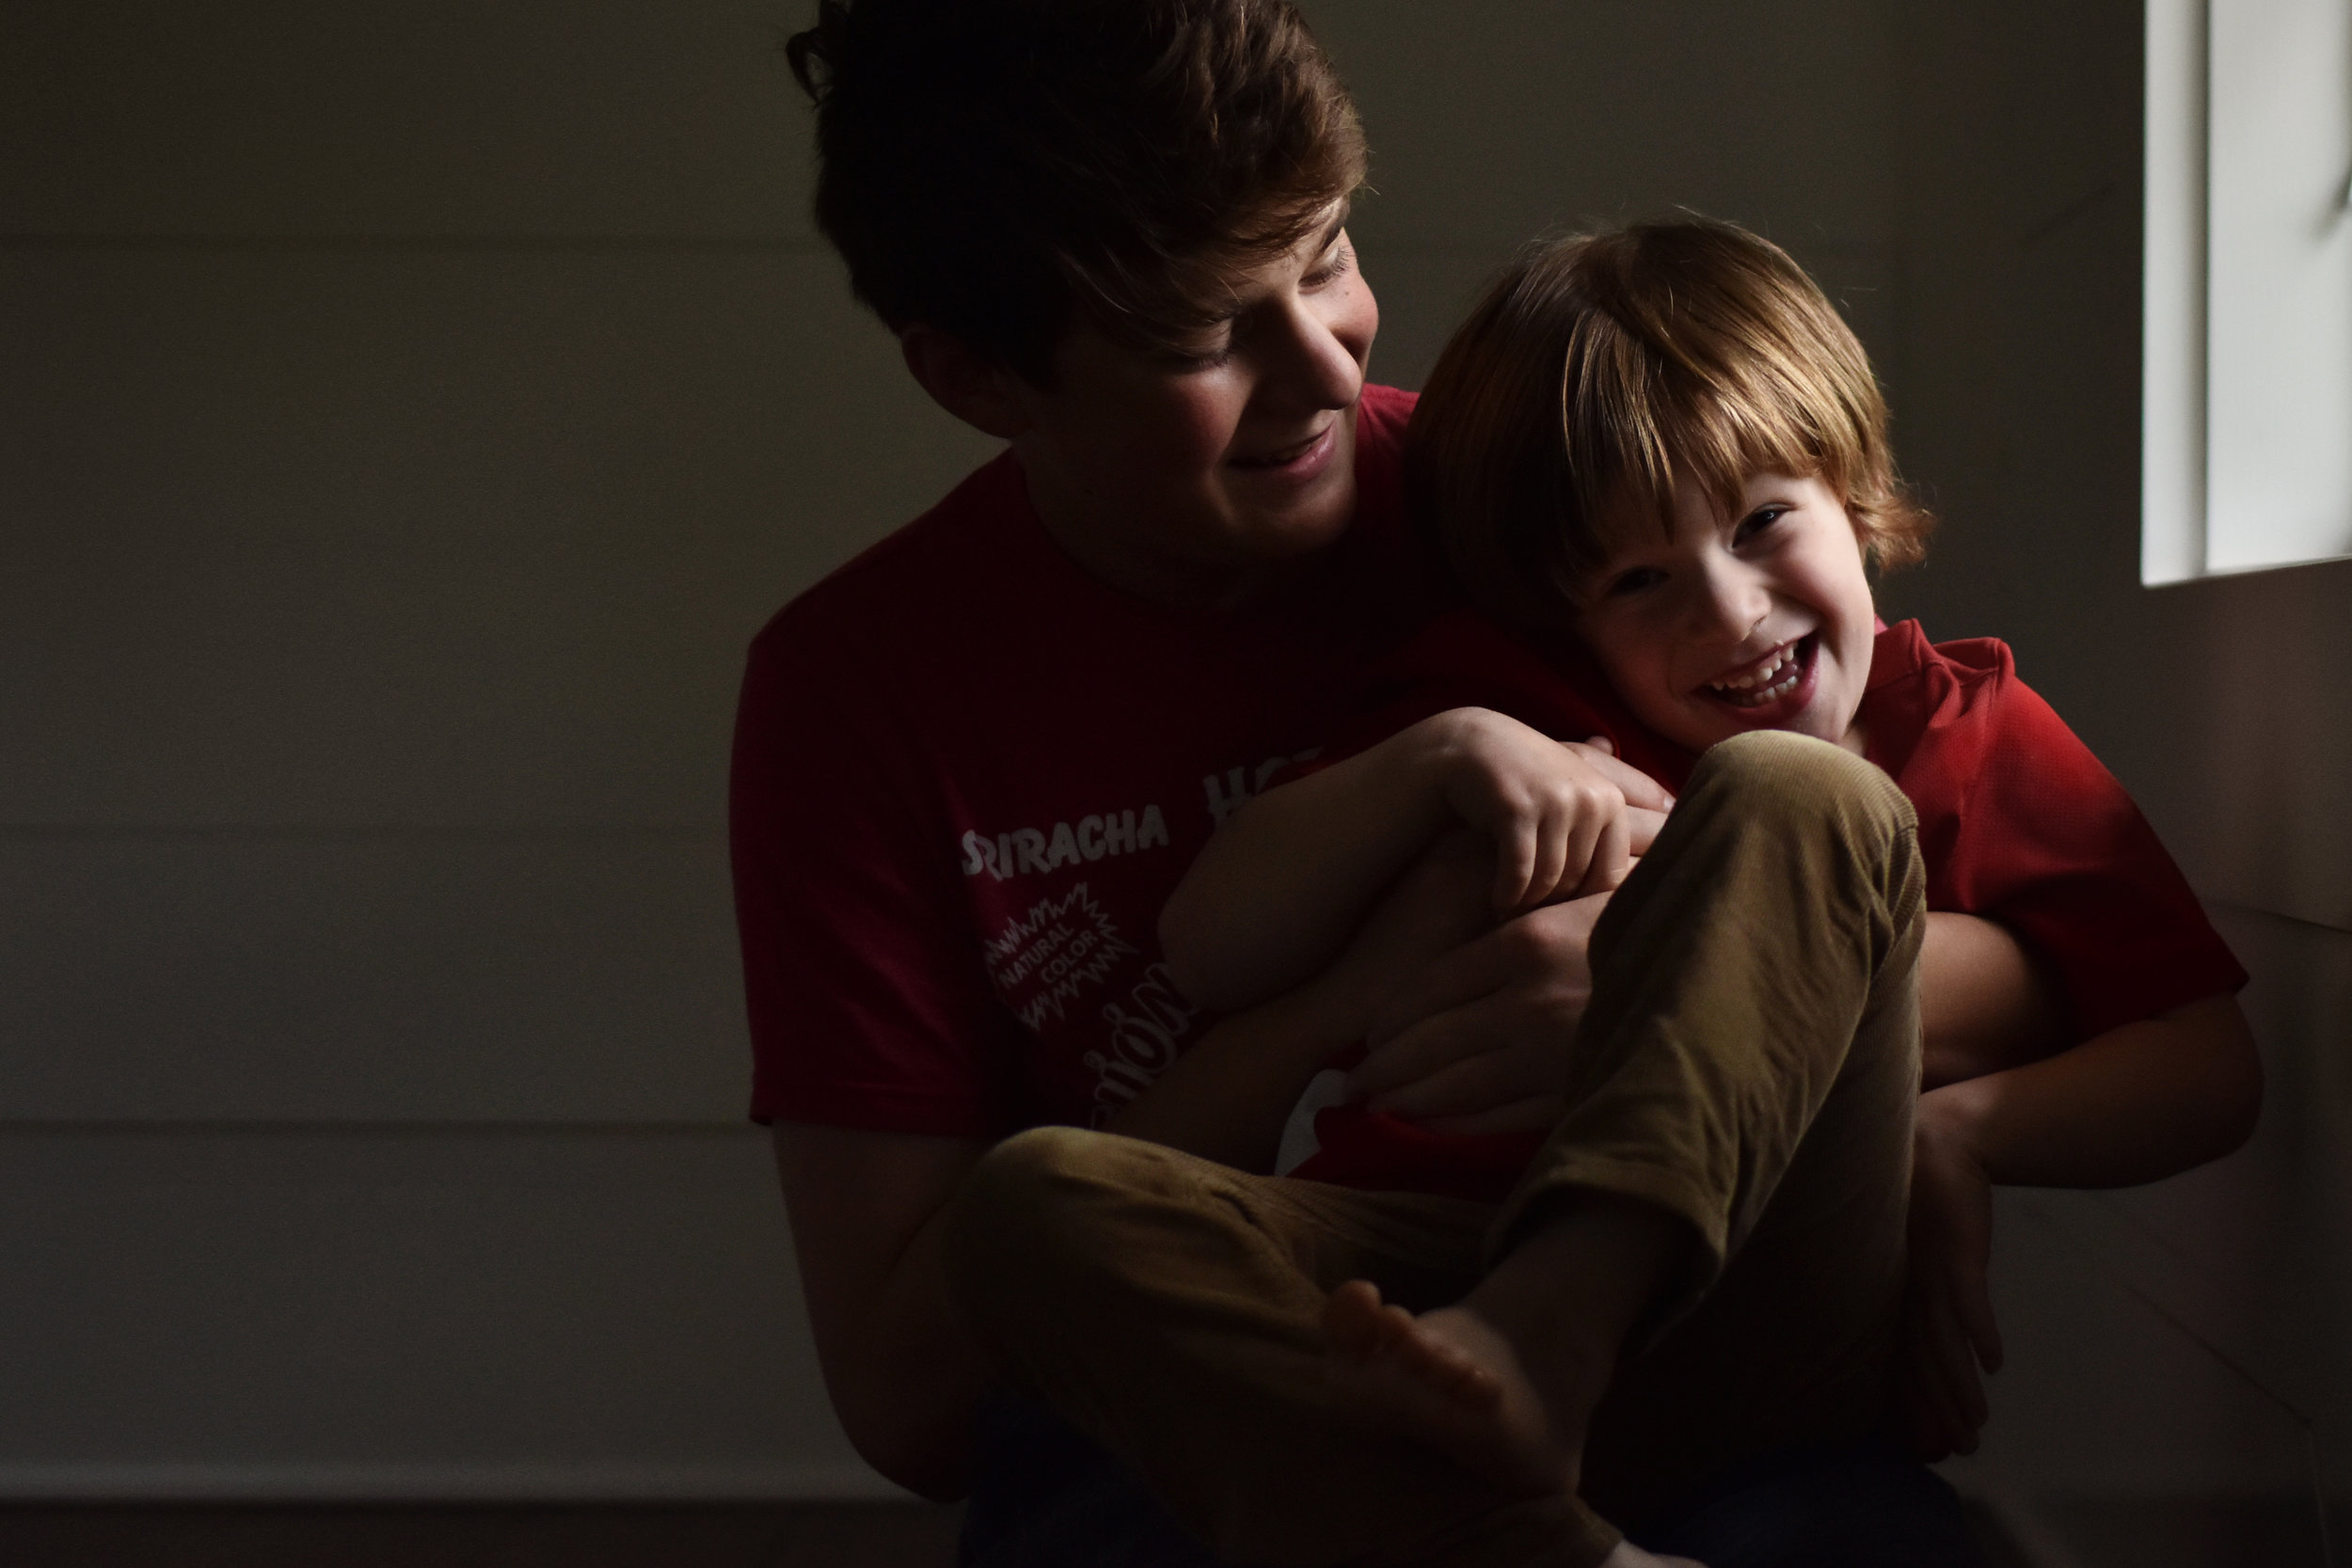 D5600 two boys smiling together by window by kellie bieser.jpg